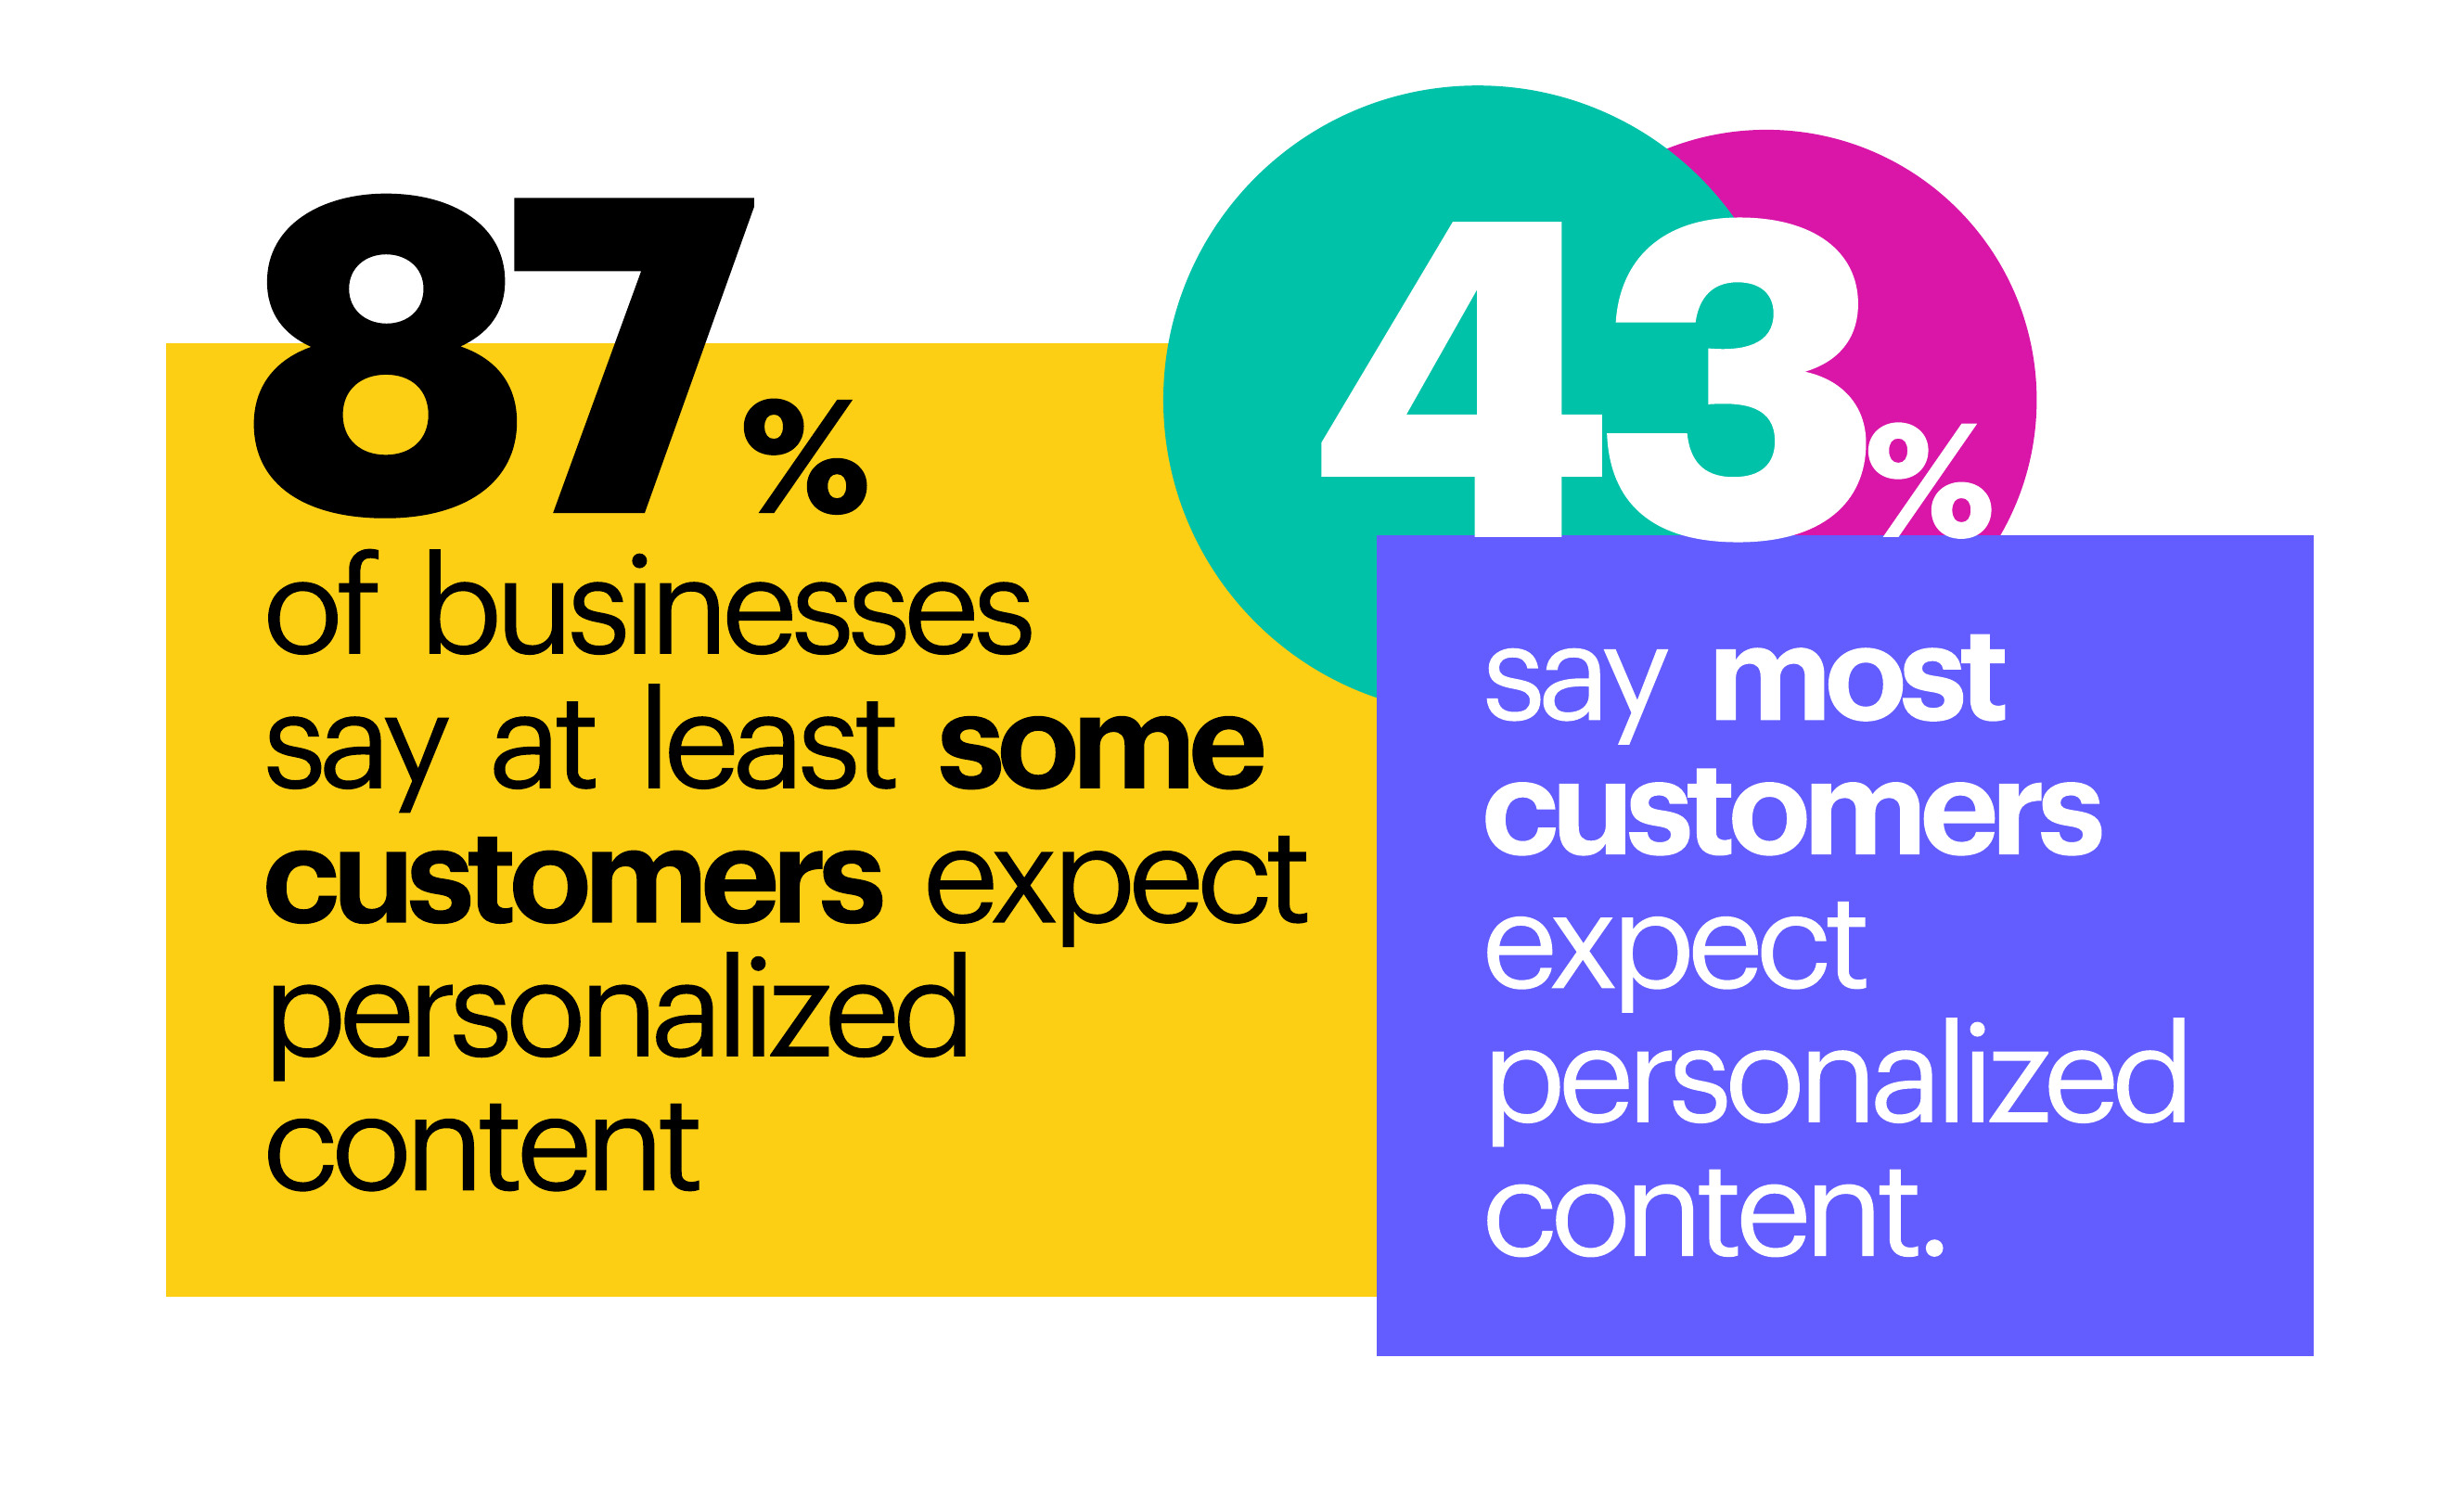 87% of businesses say at least some customers expect personalized content, 43% say most customers expect personalized content